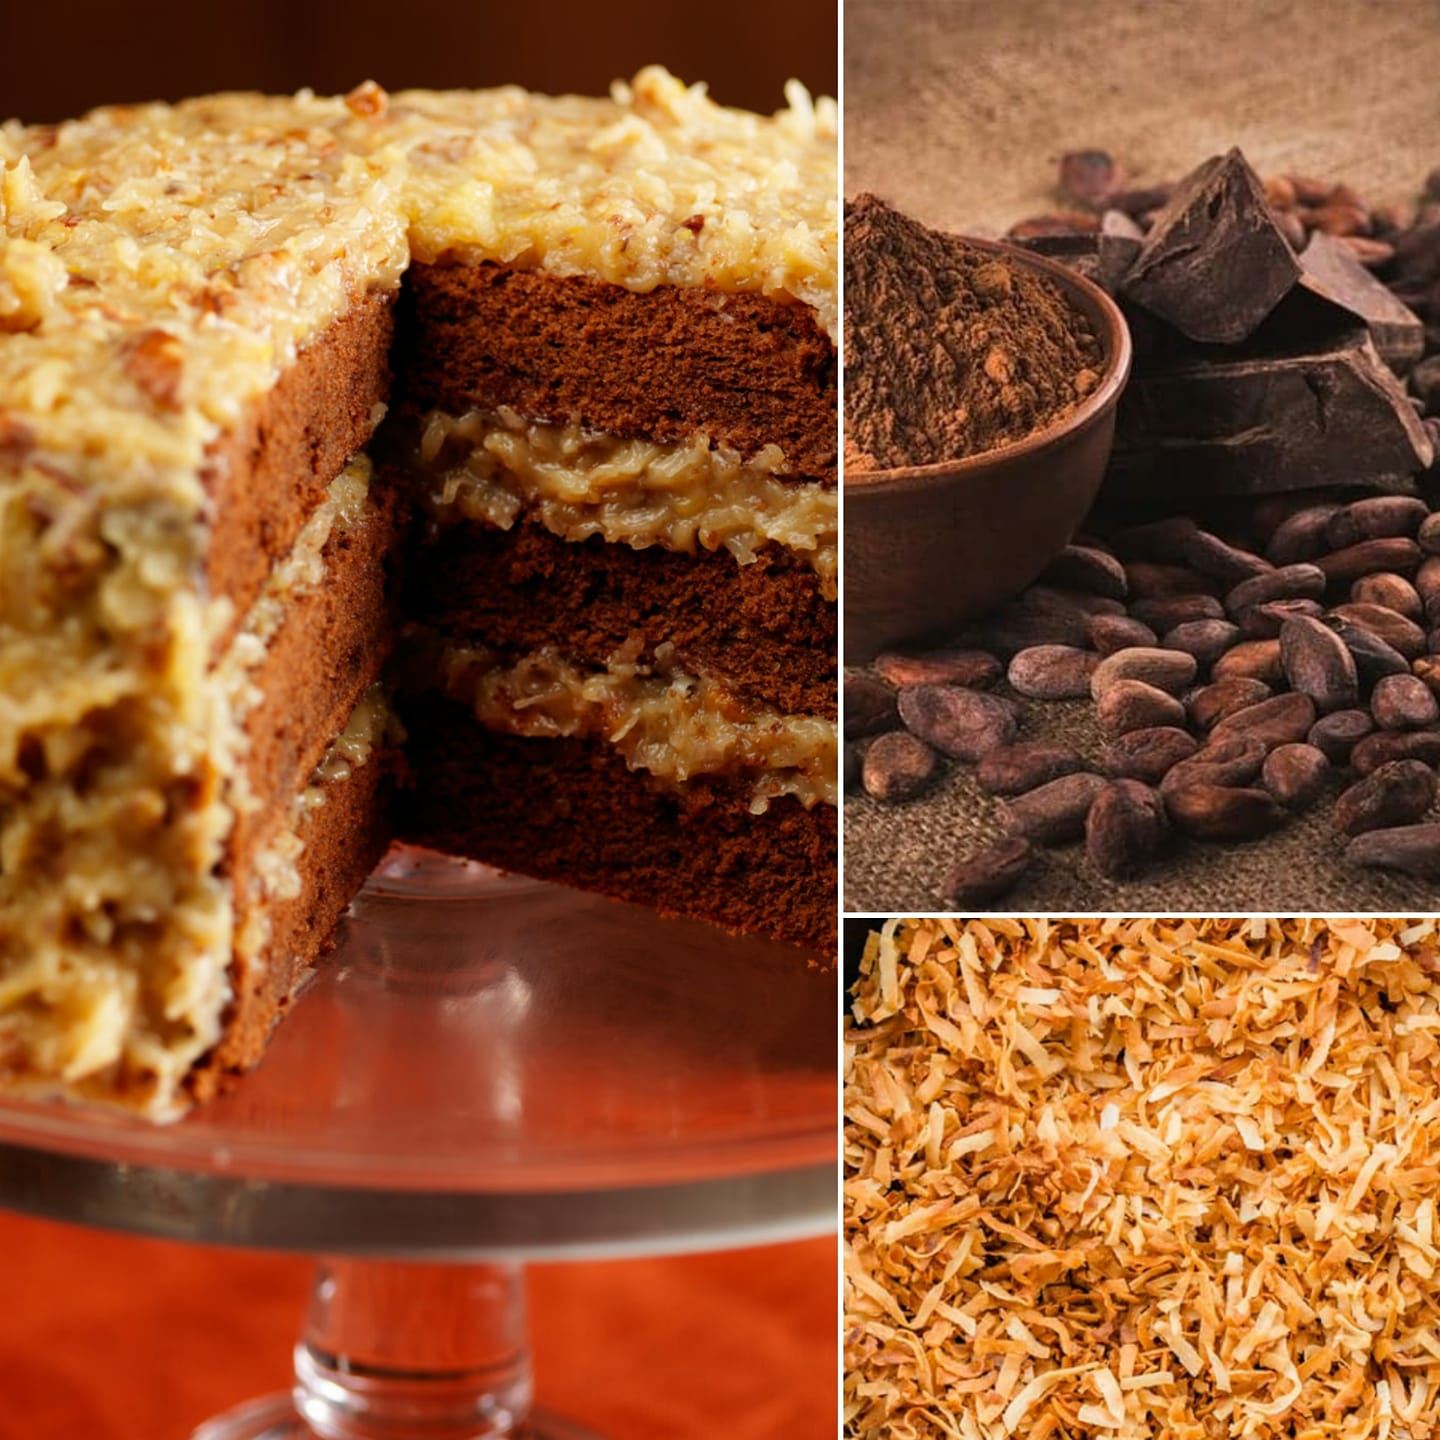 Three photos - German chocolate cake, cocoa, and toasted coconut.